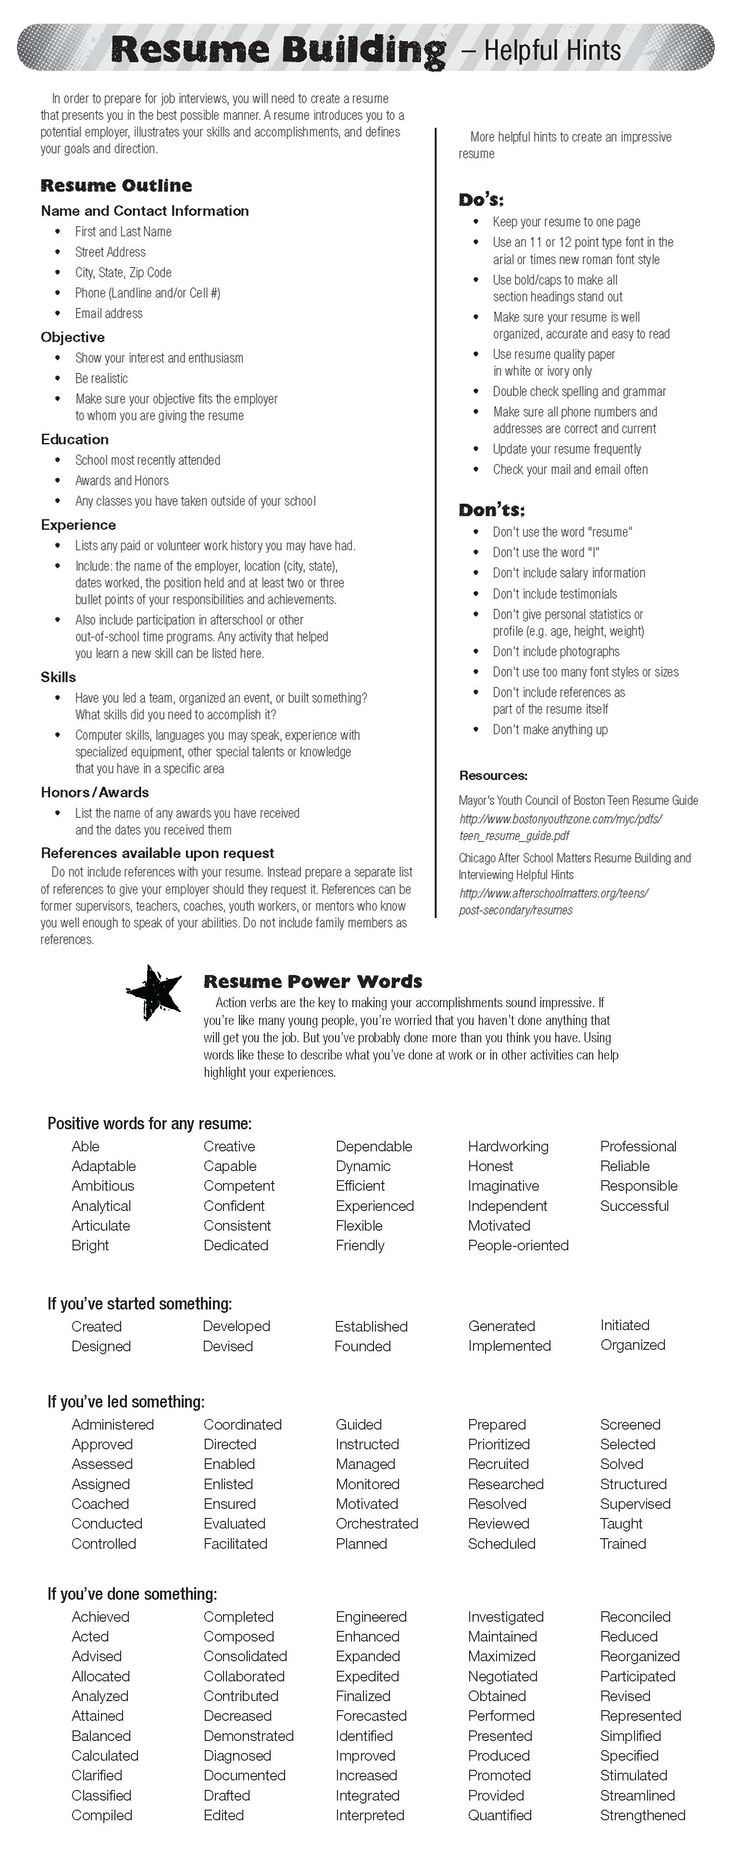 Opposenewapstandardsus  Remarkable  Ideas About Resume On Pinterest  Cv Format Resume Cv And  With Excellent  Ideas About Resume On Pinterest  Cv Format Resume Cv And Resume Templates With Agreeable Government Resume Examples Also High School Senior Resume In Addition High School Student Resume For College And Hobbies And Interests Resume As Well As Sending A Resume Via Email Additionally Resume Goals From Pinterestcom With Opposenewapstandardsus  Excellent  Ideas About Resume On Pinterest  Cv Format Resume Cv And  With Agreeable  Ideas About Resume On Pinterest  Cv Format Resume Cv And Resume Templates And Remarkable Government Resume Examples Also High School Senior Resume In Addition High School Student Resume For College From Pinterestcom